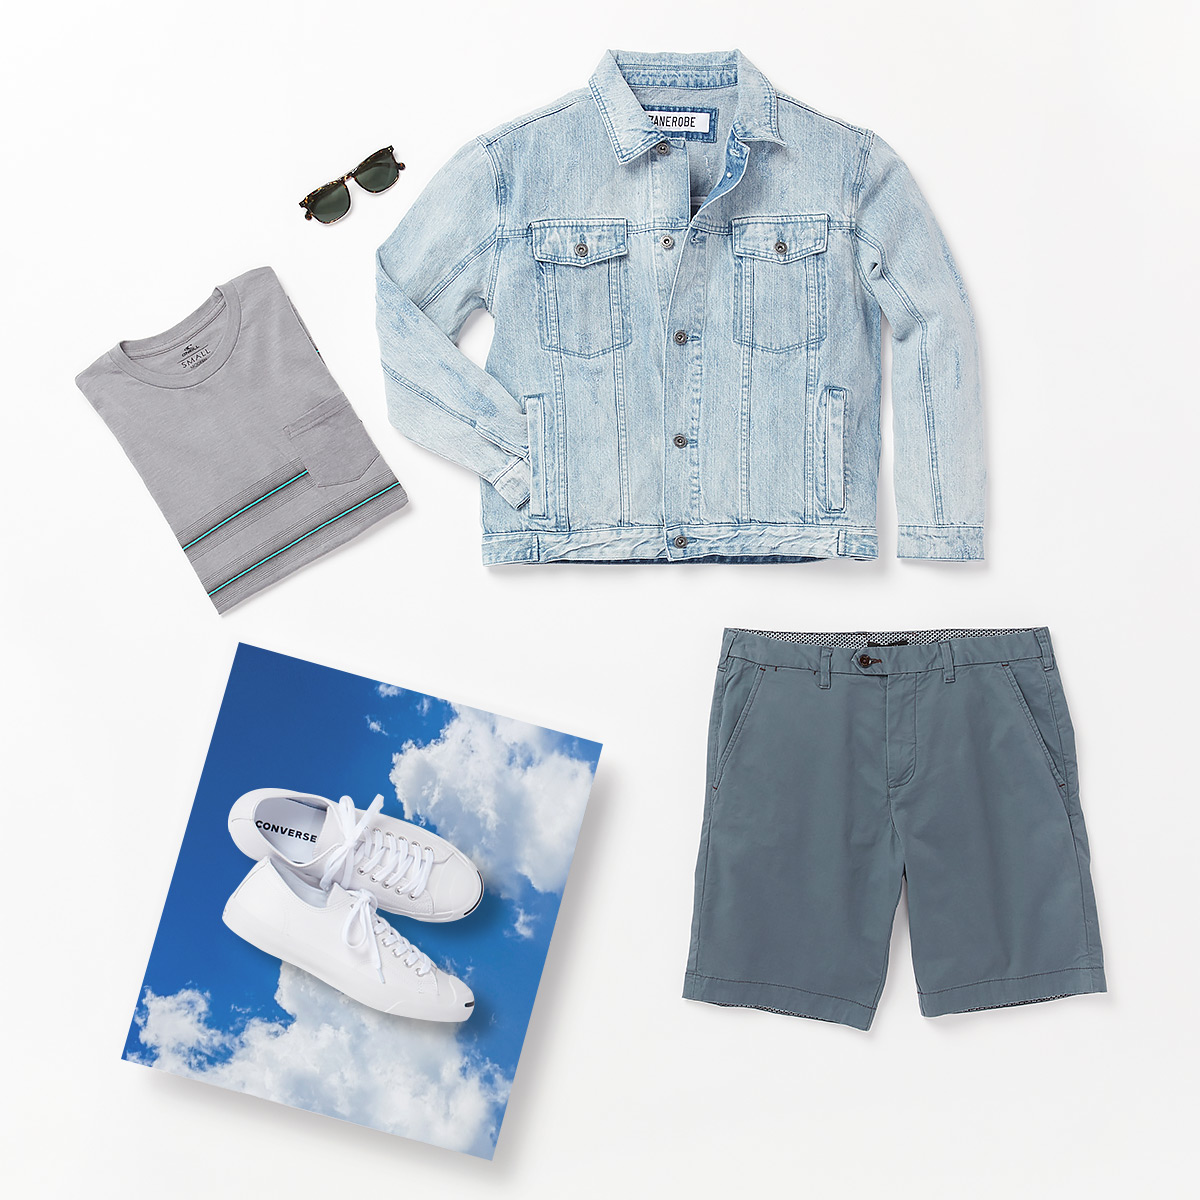 Grey t-shirt, light wash denim jacket